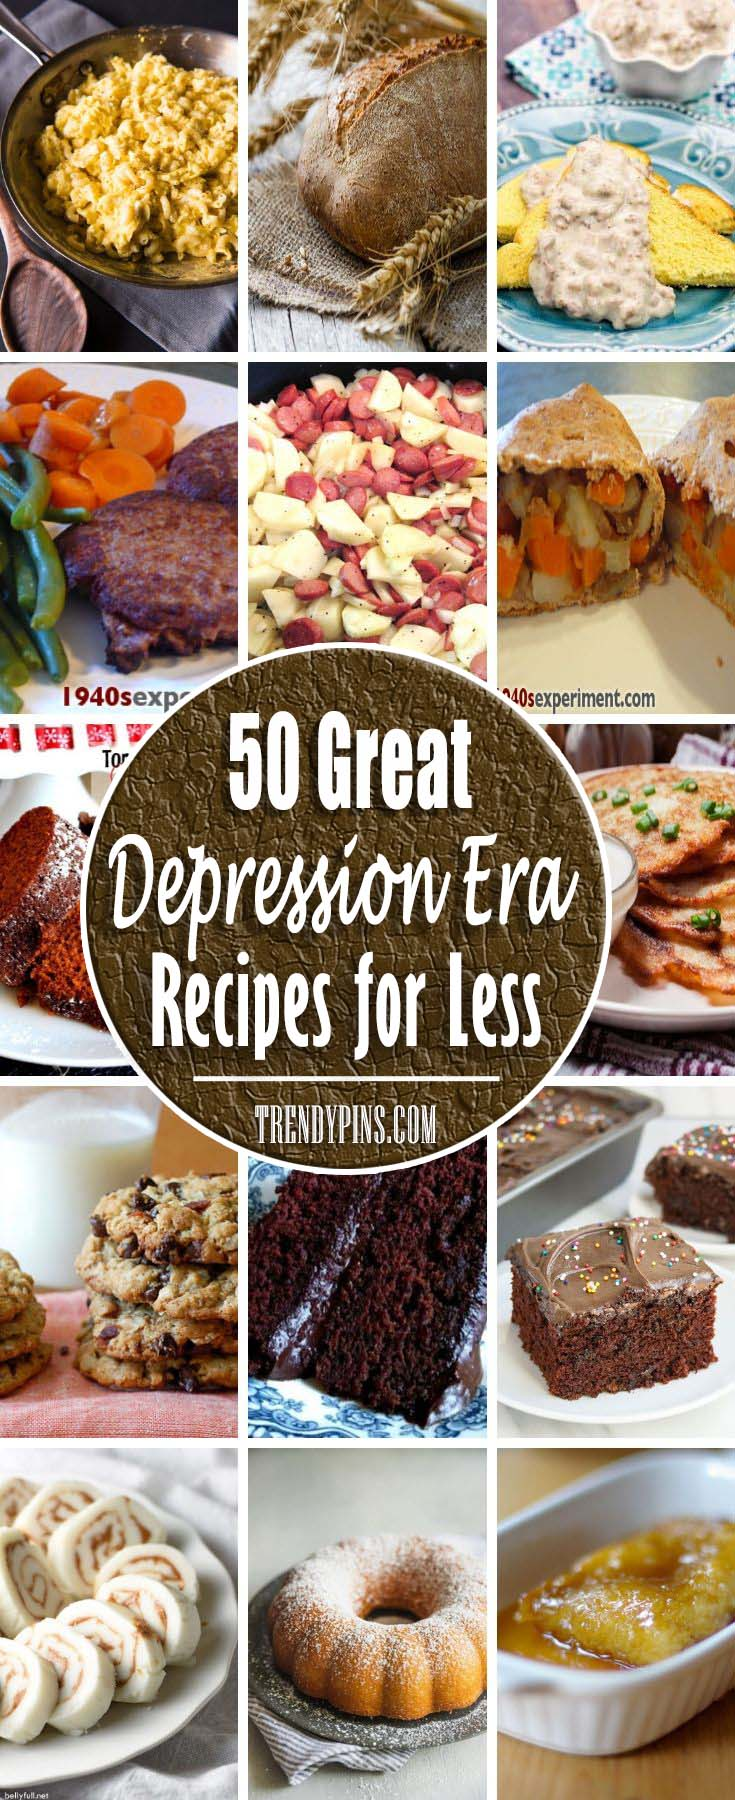 9 Great Depression Era Recipes for Less - Trendy Pins